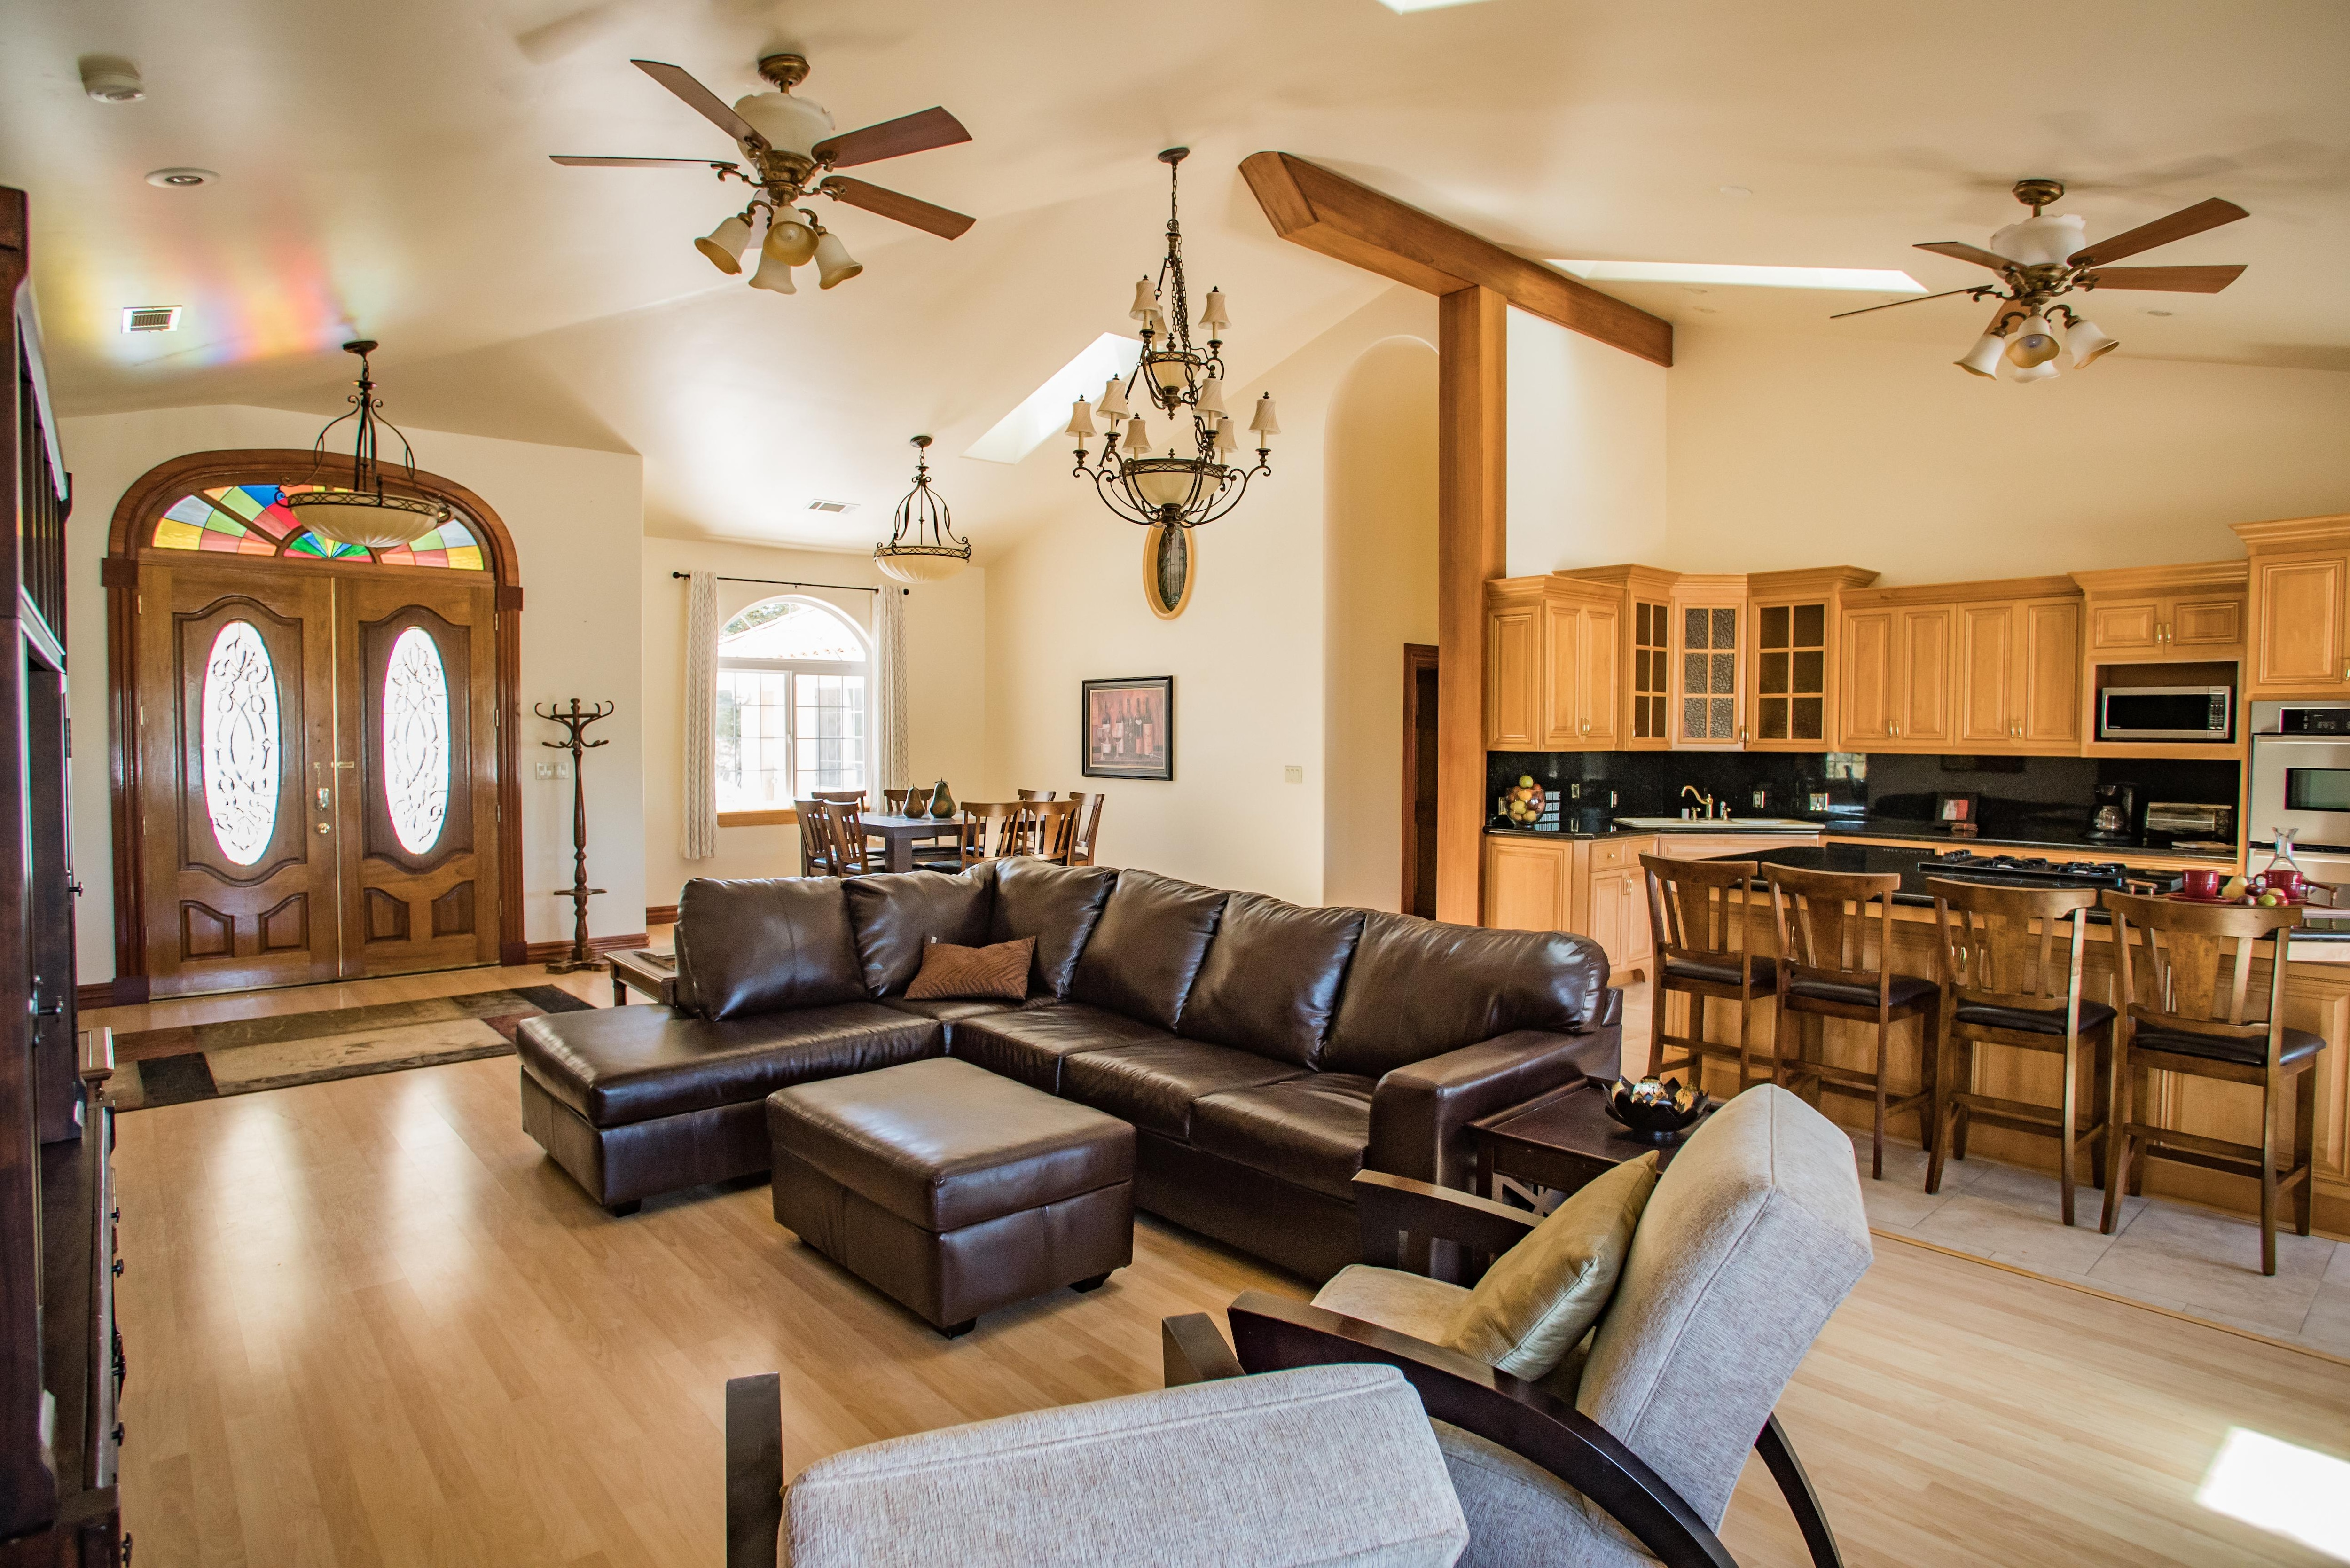 Property Image 1 - Large Family Home in Vineyard